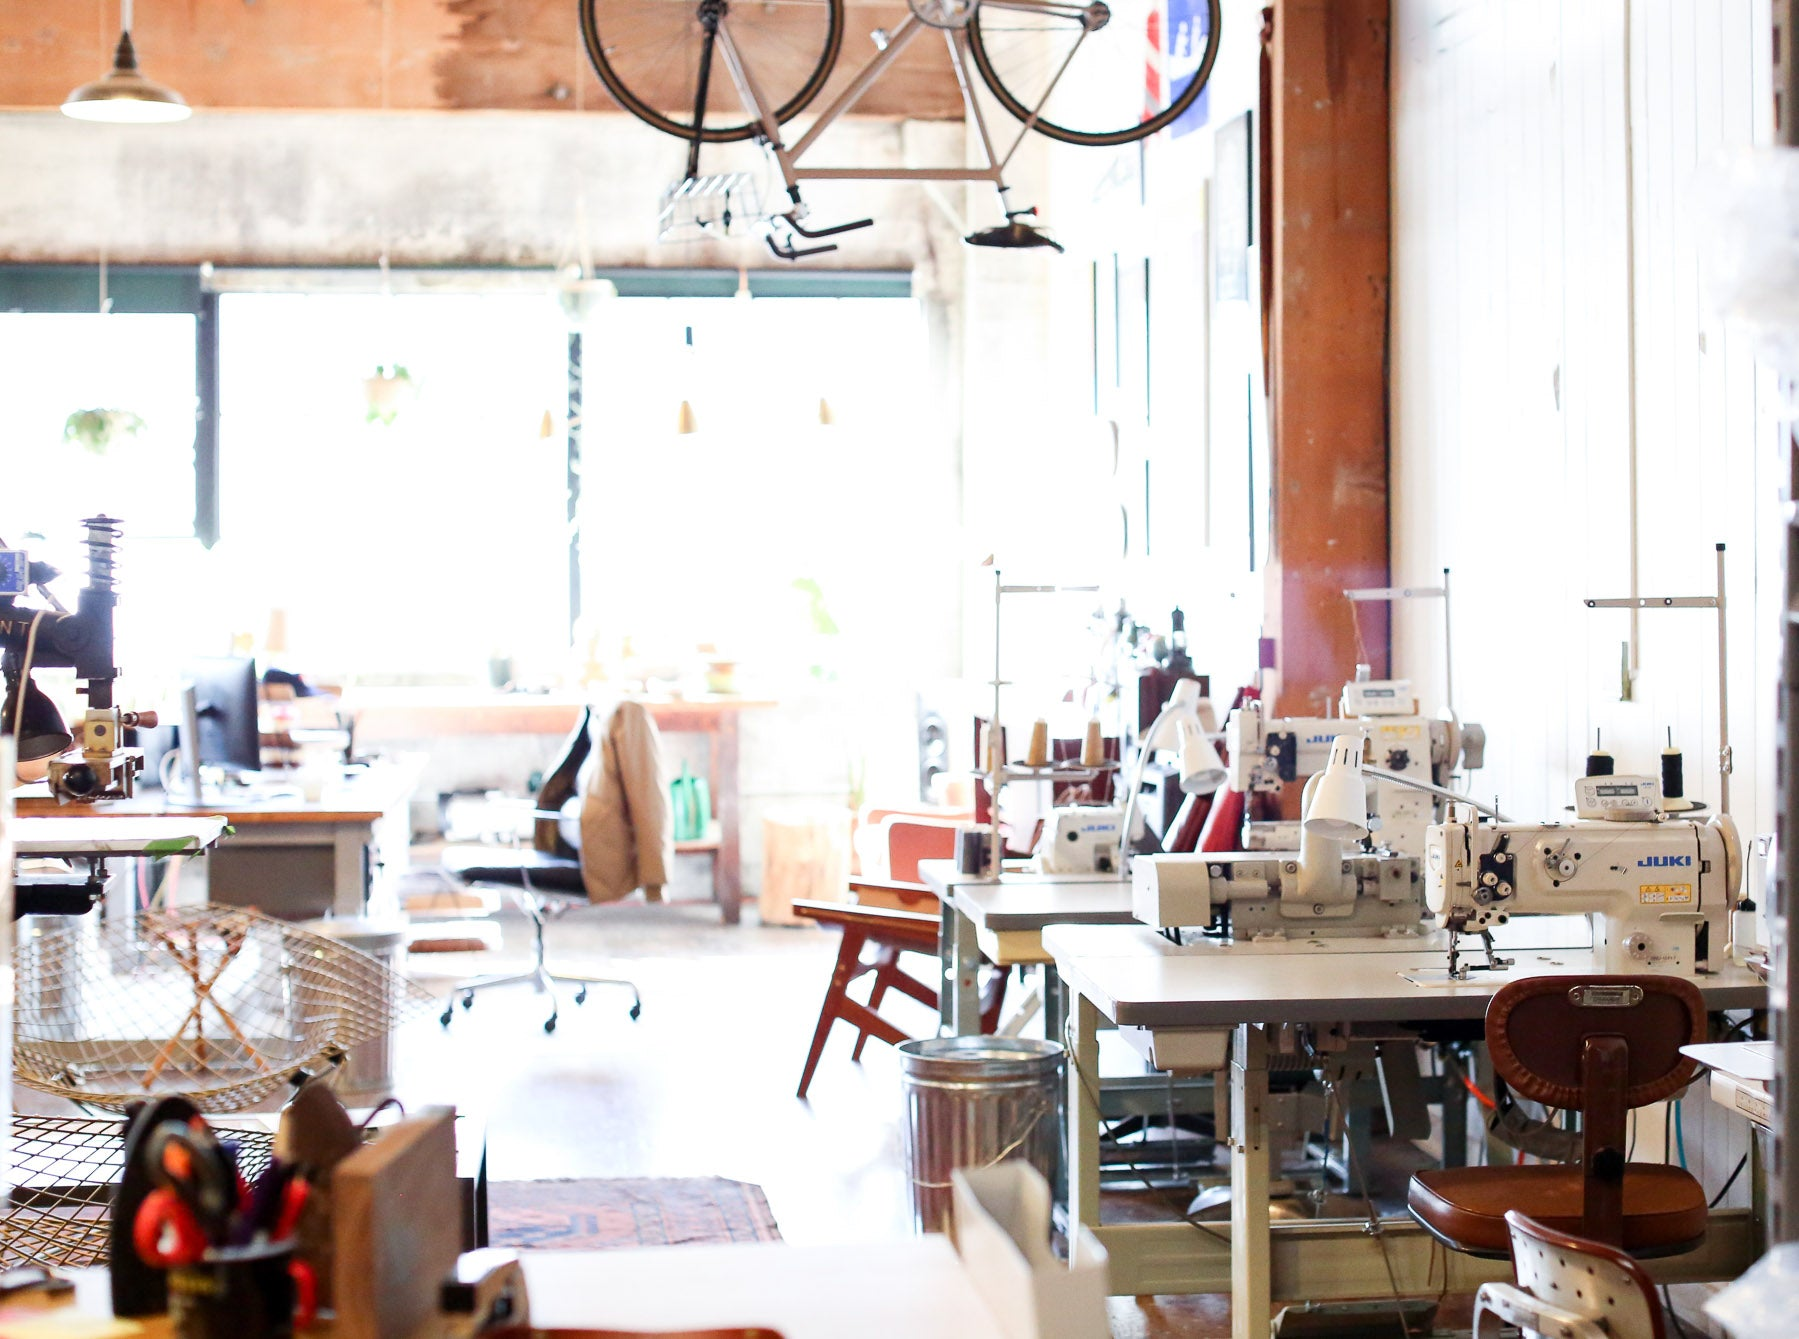 Leatherwork machines in W&F design studio